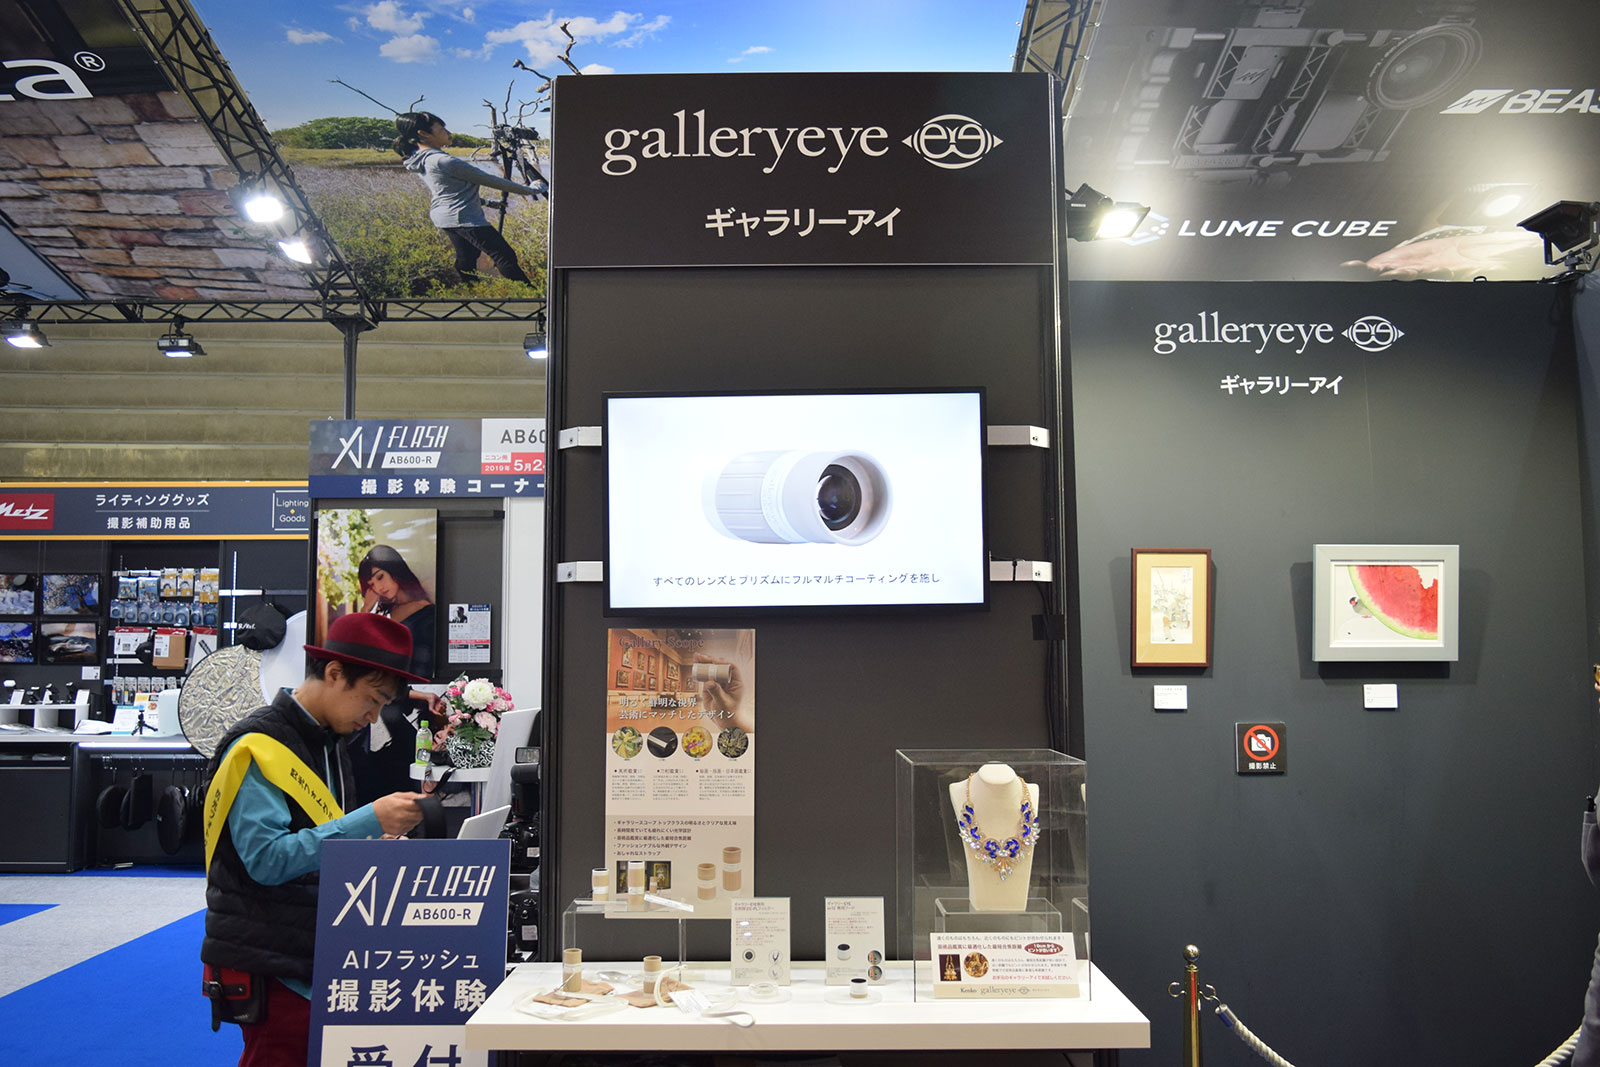 Kenko Galleryeye, Kenko's most elegant monoculars deserved a corner under the spotlights, where you could experience their magnifying power and outstanding portability, especially suited for galleries and museums.